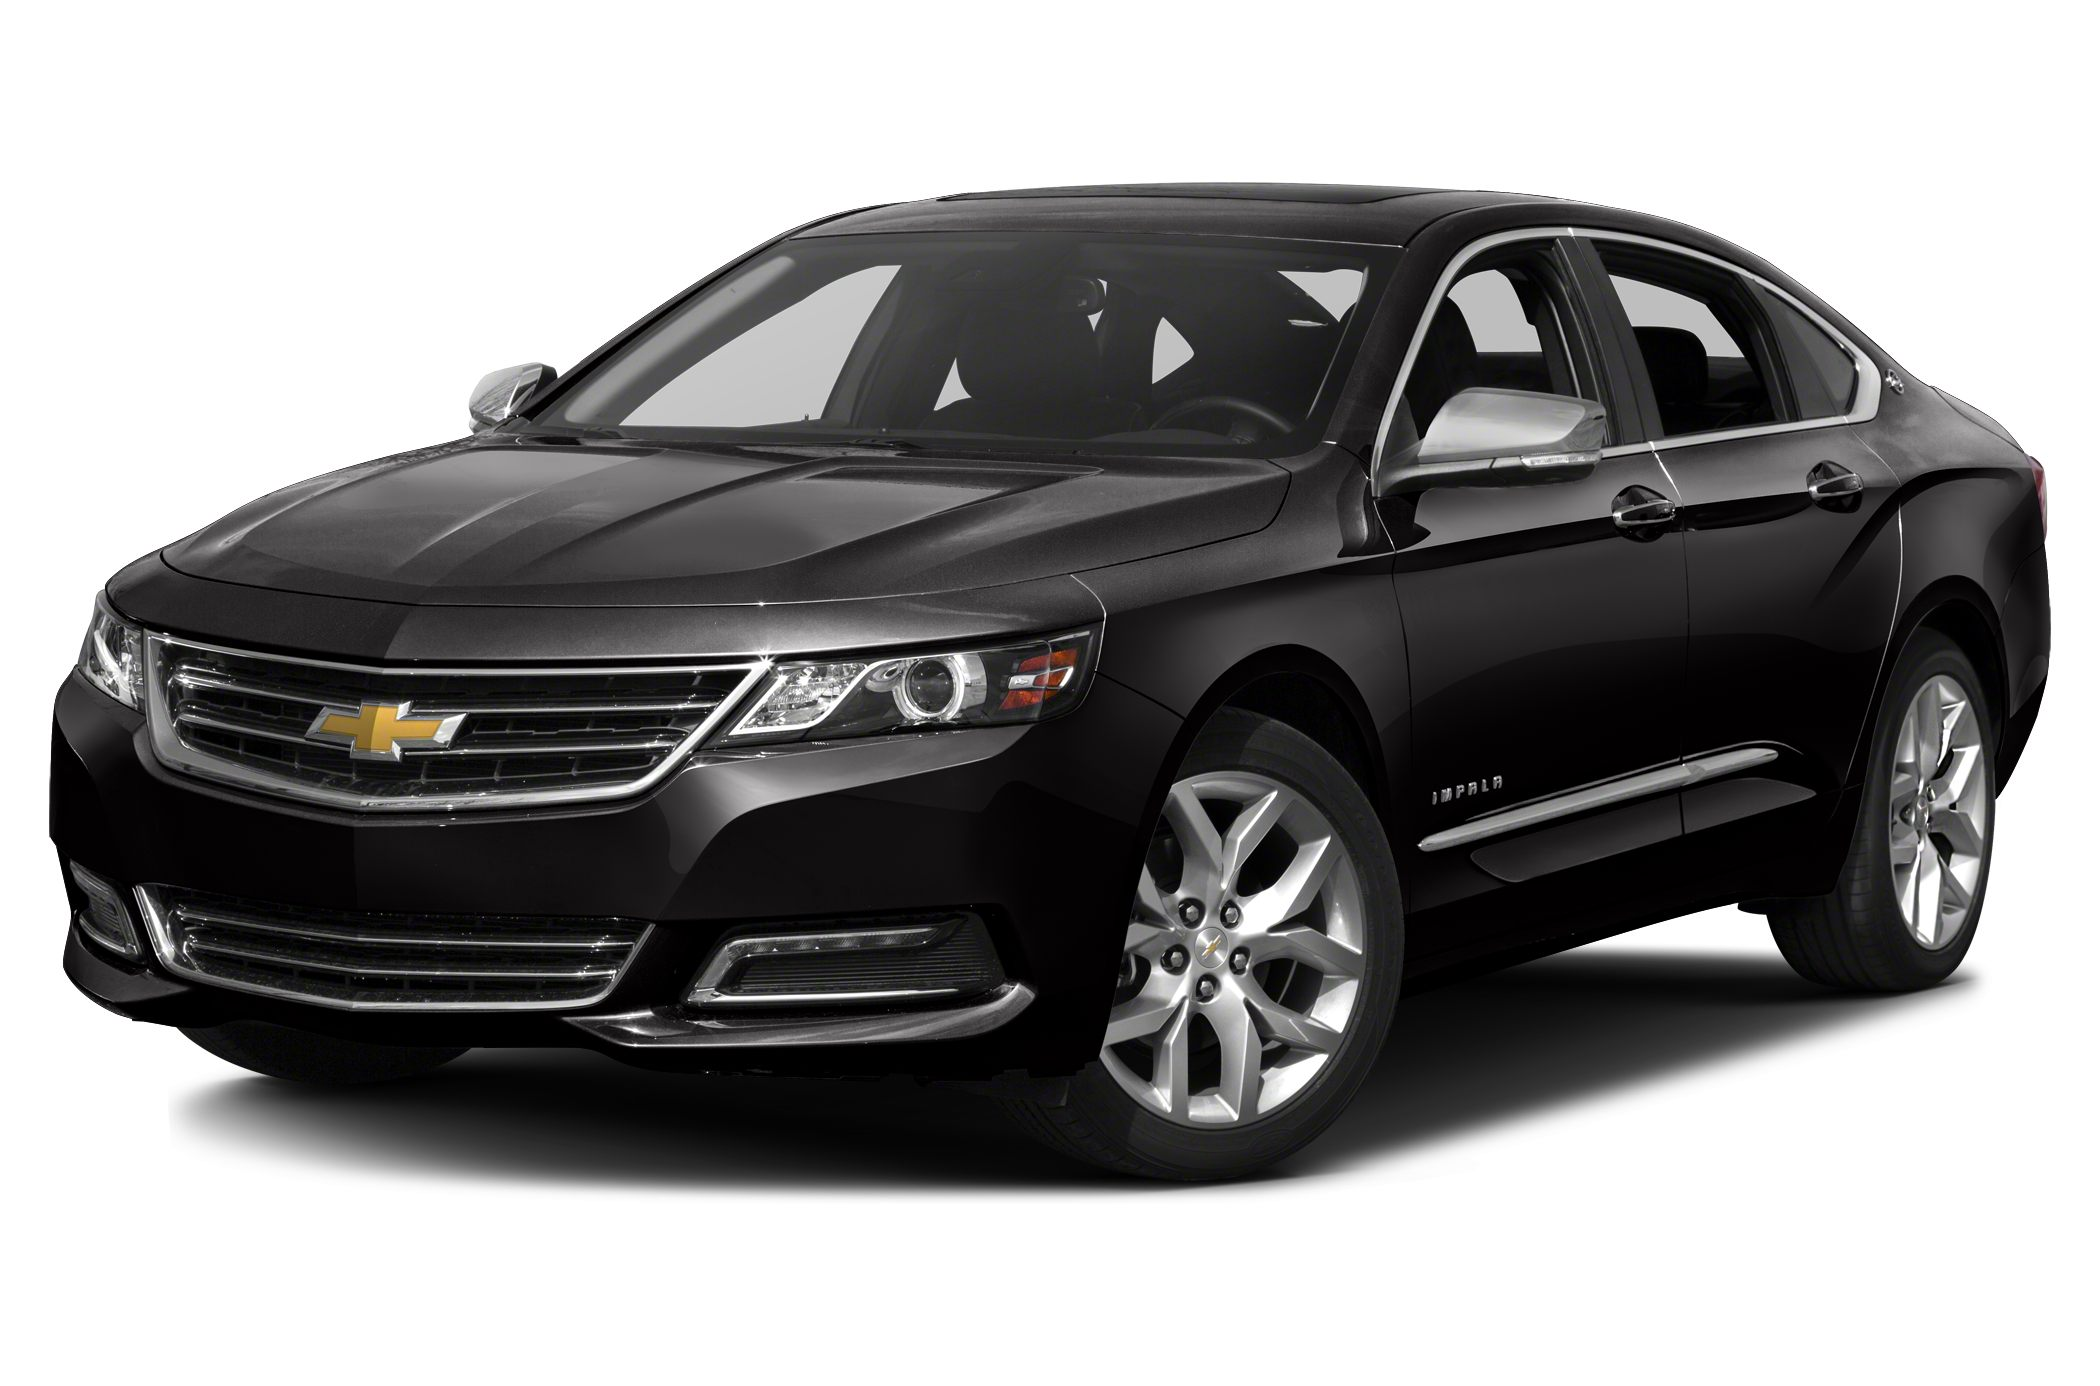 2015 Chevrolet Impala LT w2LT Vehicle Options ABS Brakes Front Power Lumbar Support Steering Whee